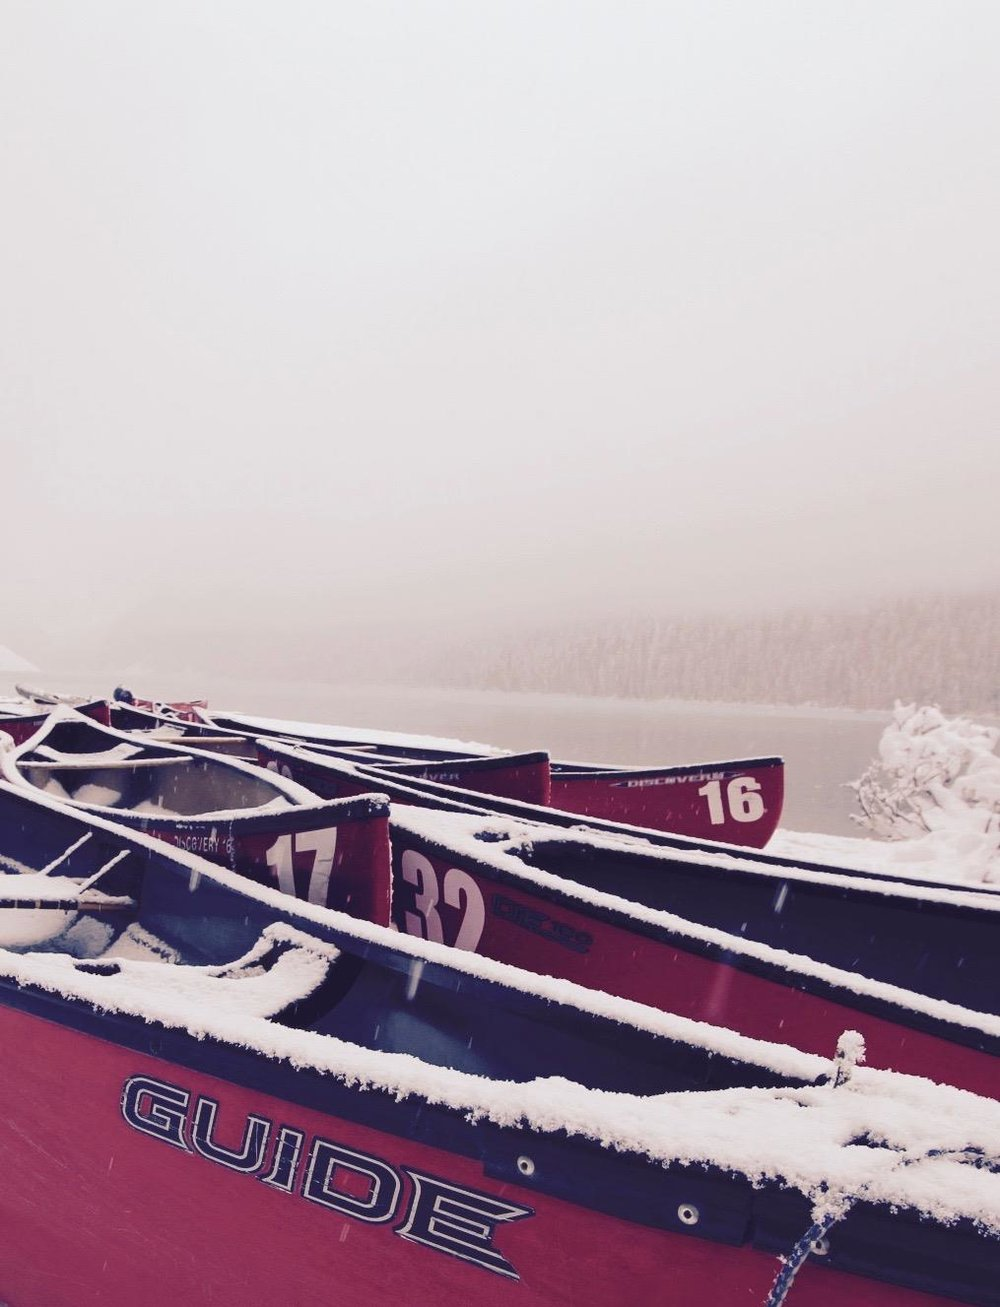 Beata Kaznowska - Winter came early this year! First snowfall in Lake Louise